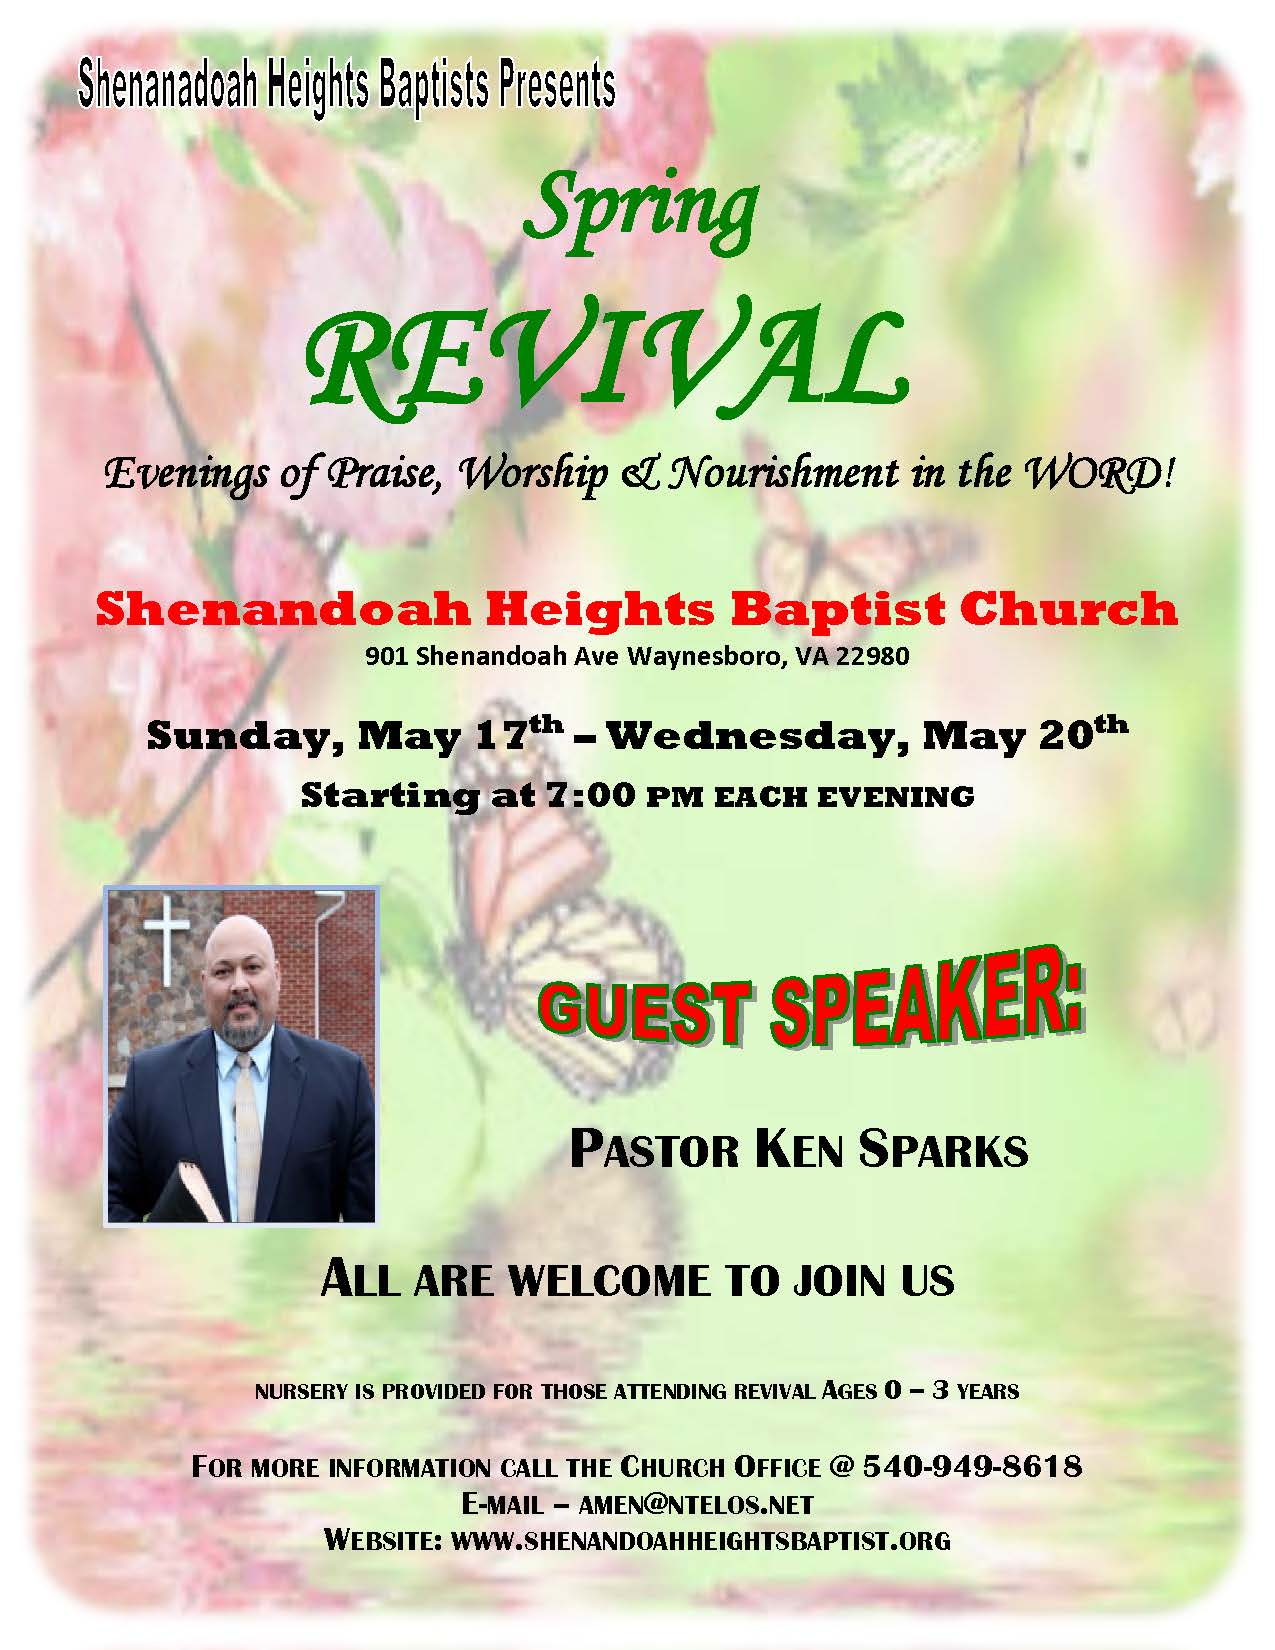 Spring Revival Flyer 2015